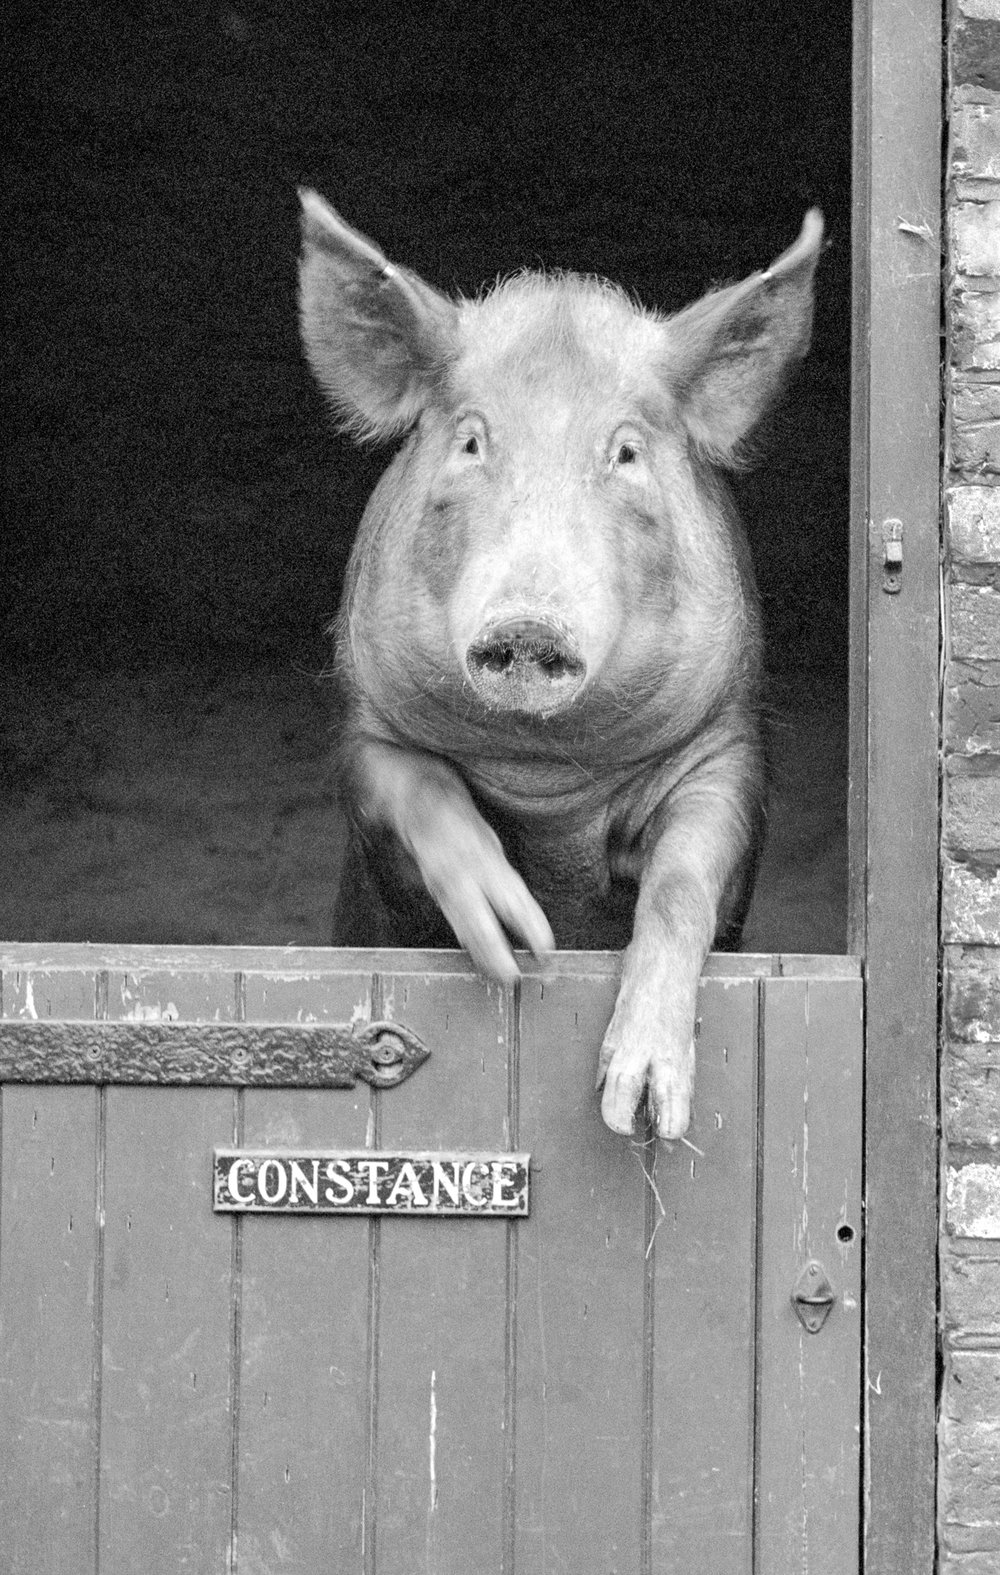 Constance the Pig.jpg